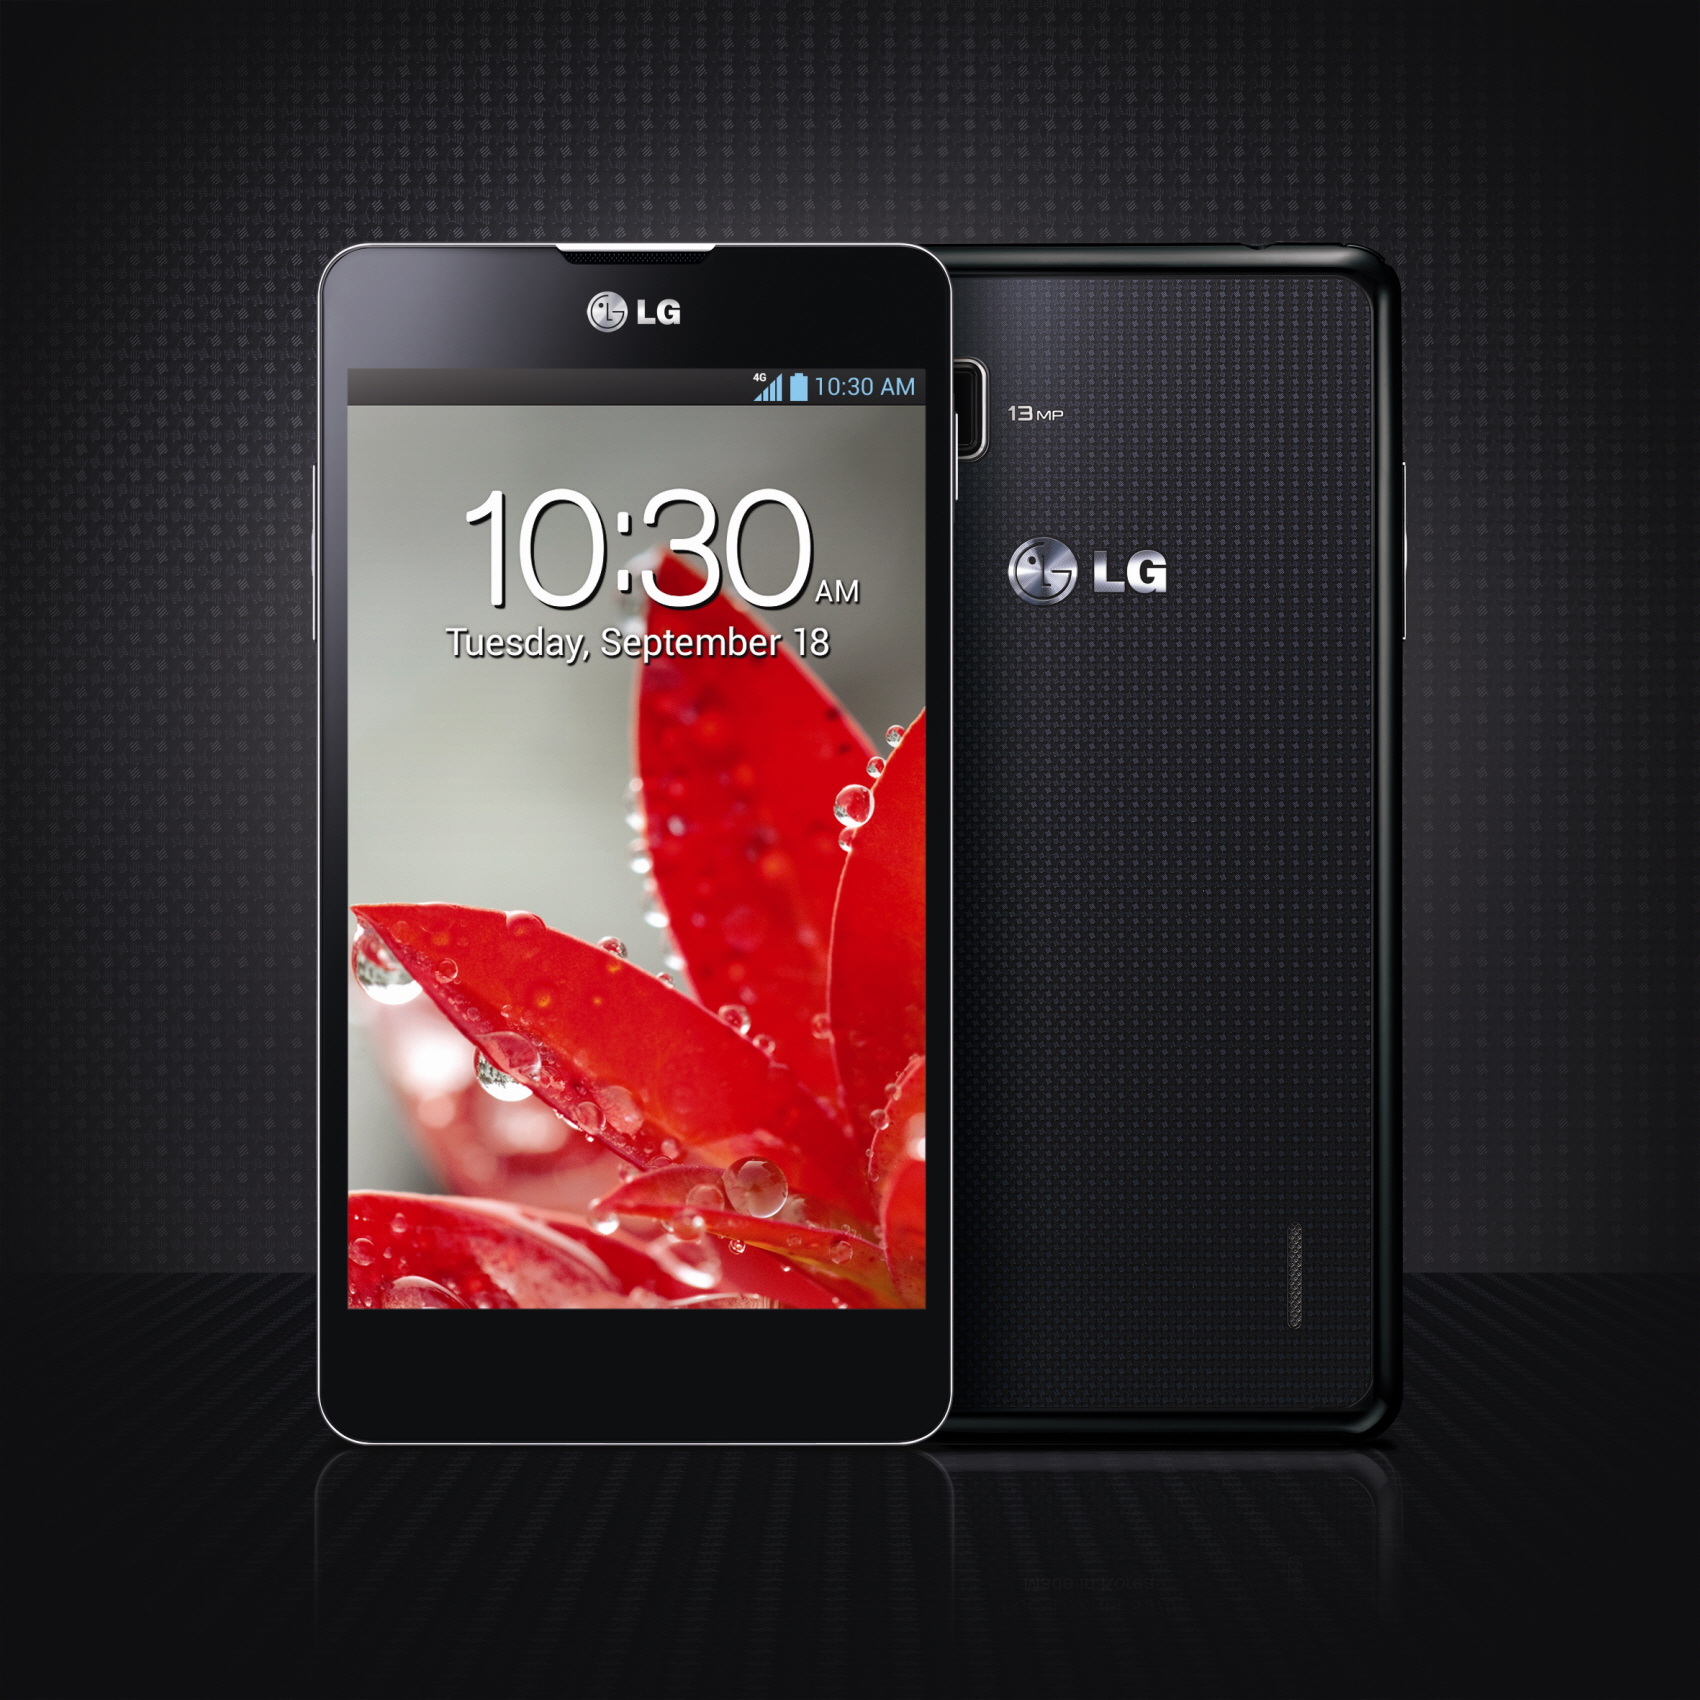 Front and rear views of LG Optimus G